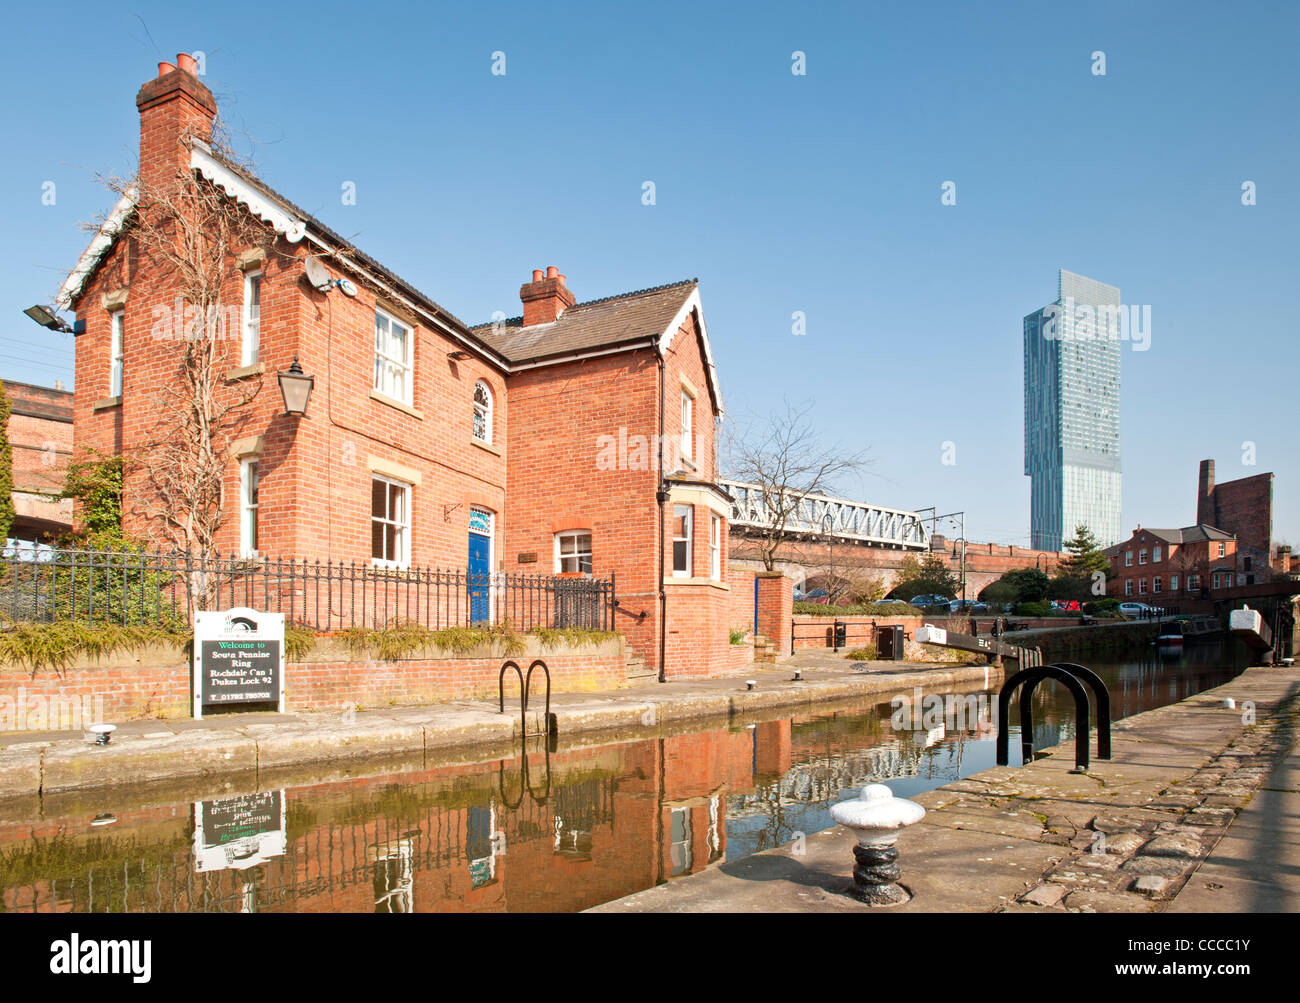 Bridgewater Canal Lock 92 (Dukes Lock), Lock Keepers Cottage & Beetham Tower, Castlefield, Manchester, England, - Stock Image